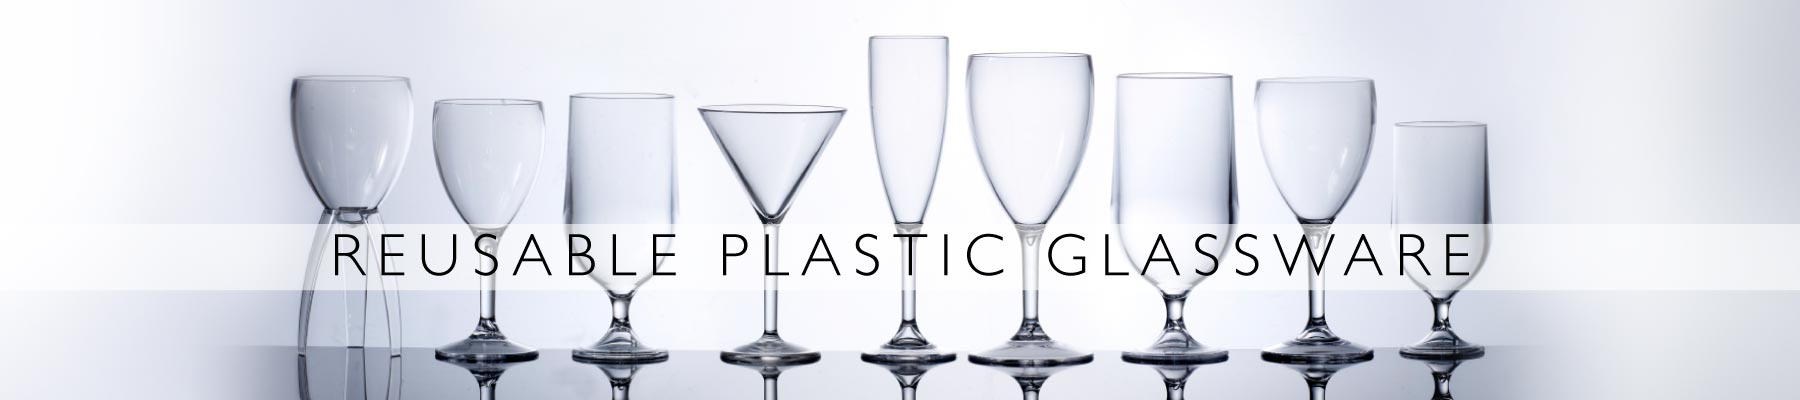 Reusable Plastic Glassware